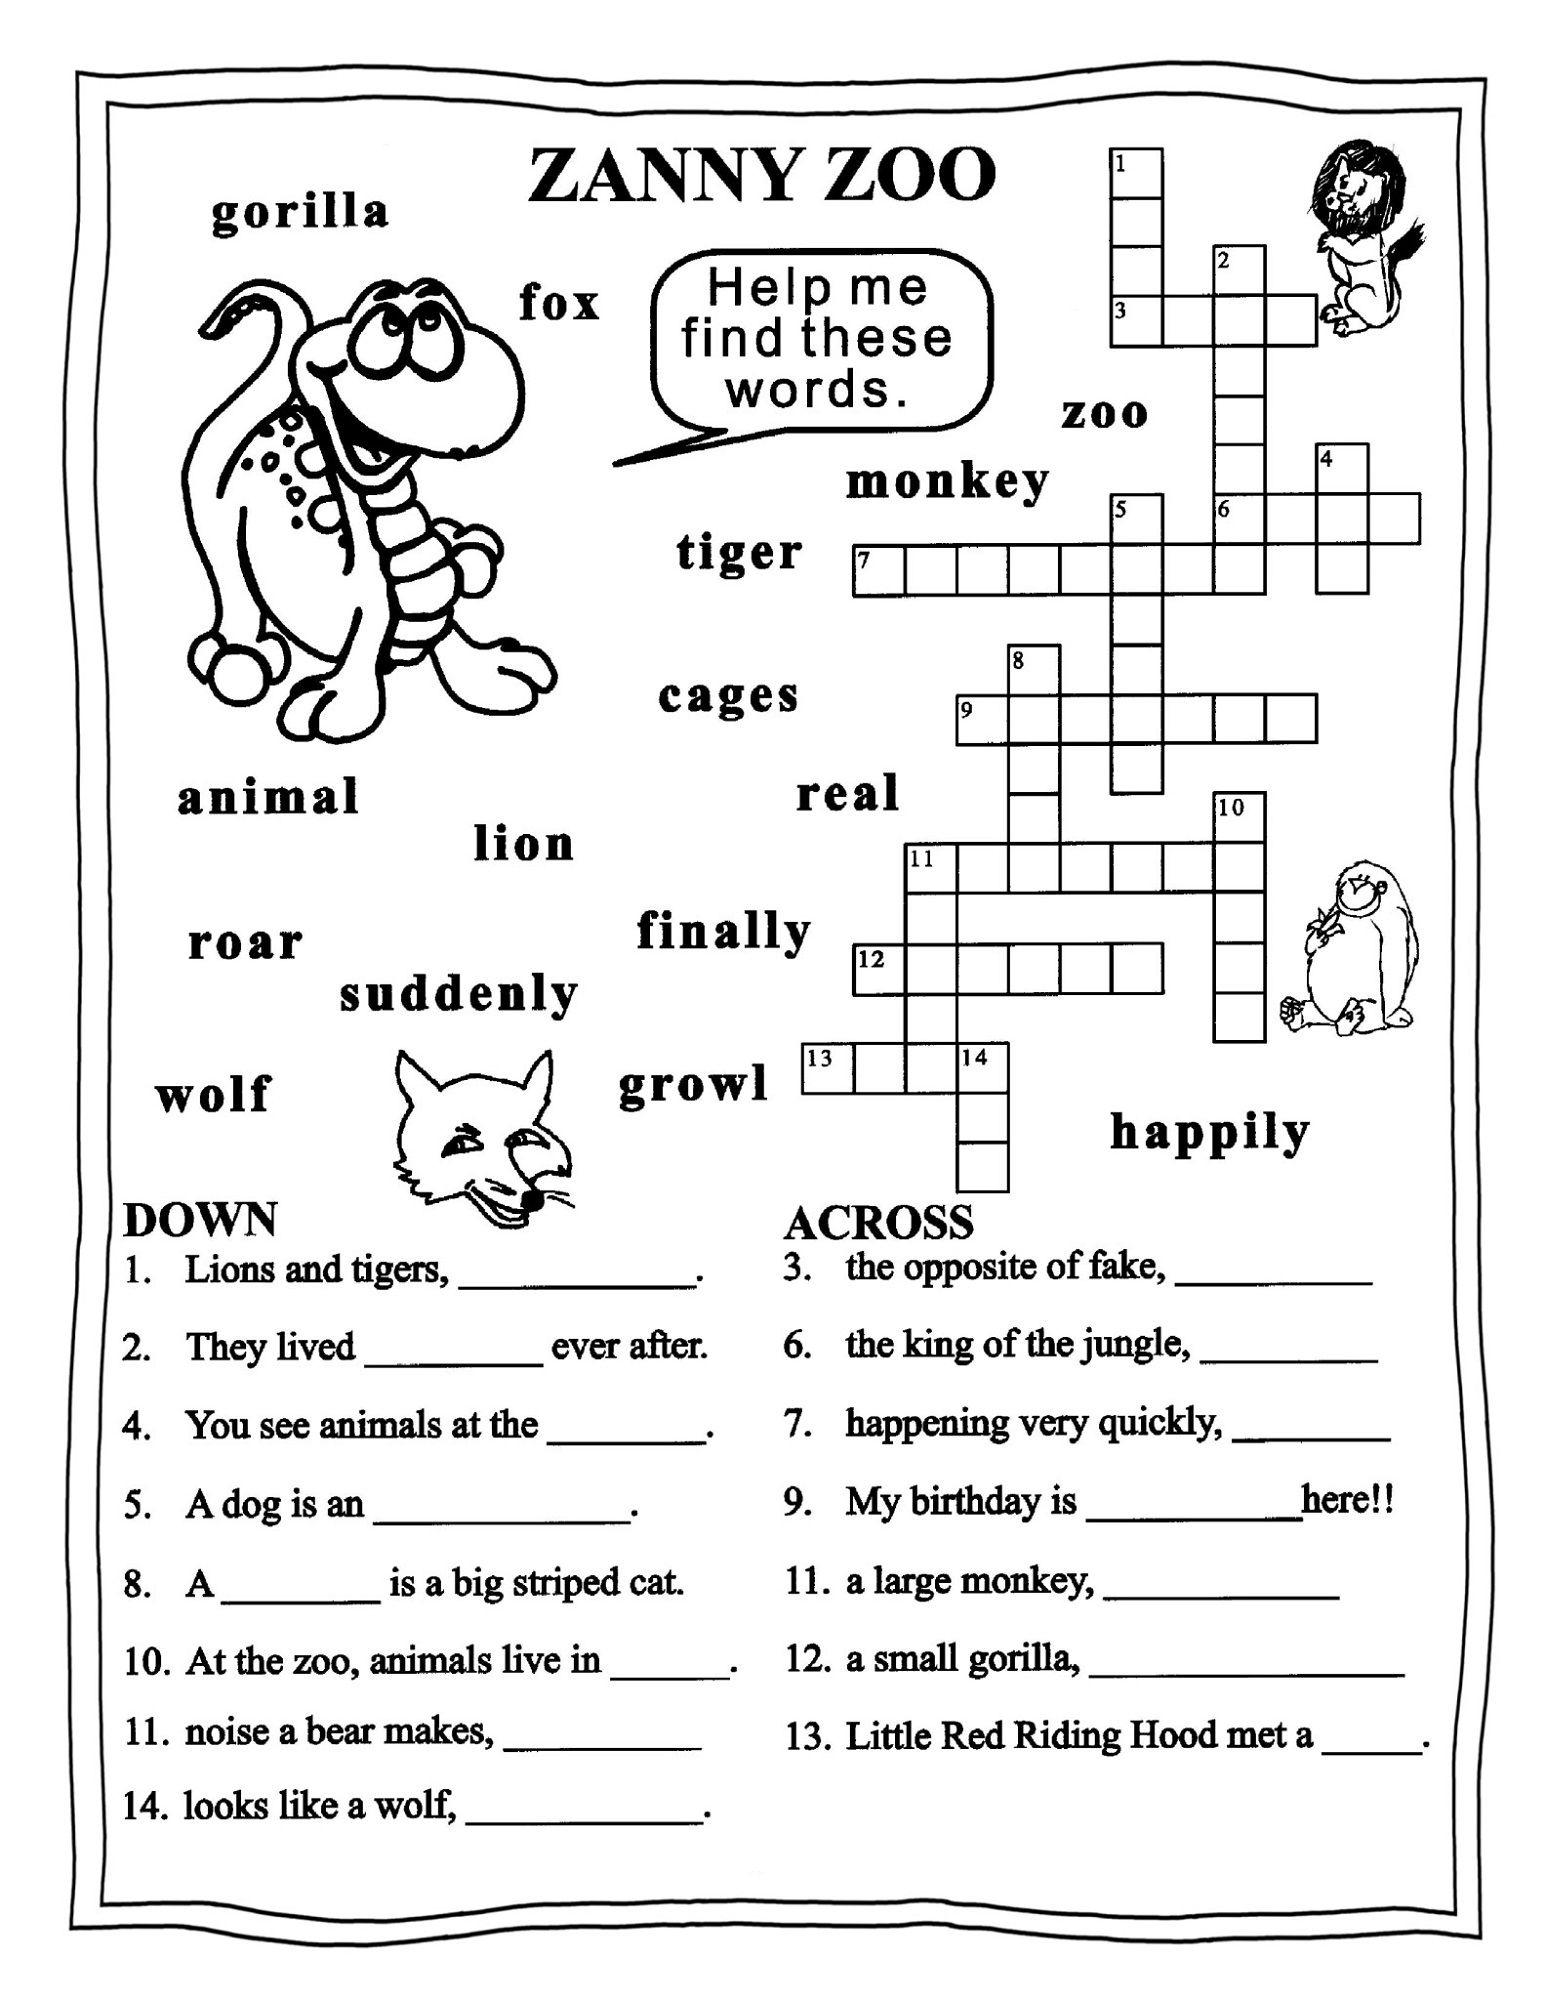 Worksheets For Grade 3 English   Learning Printable   Educative - Printable English Puzzle